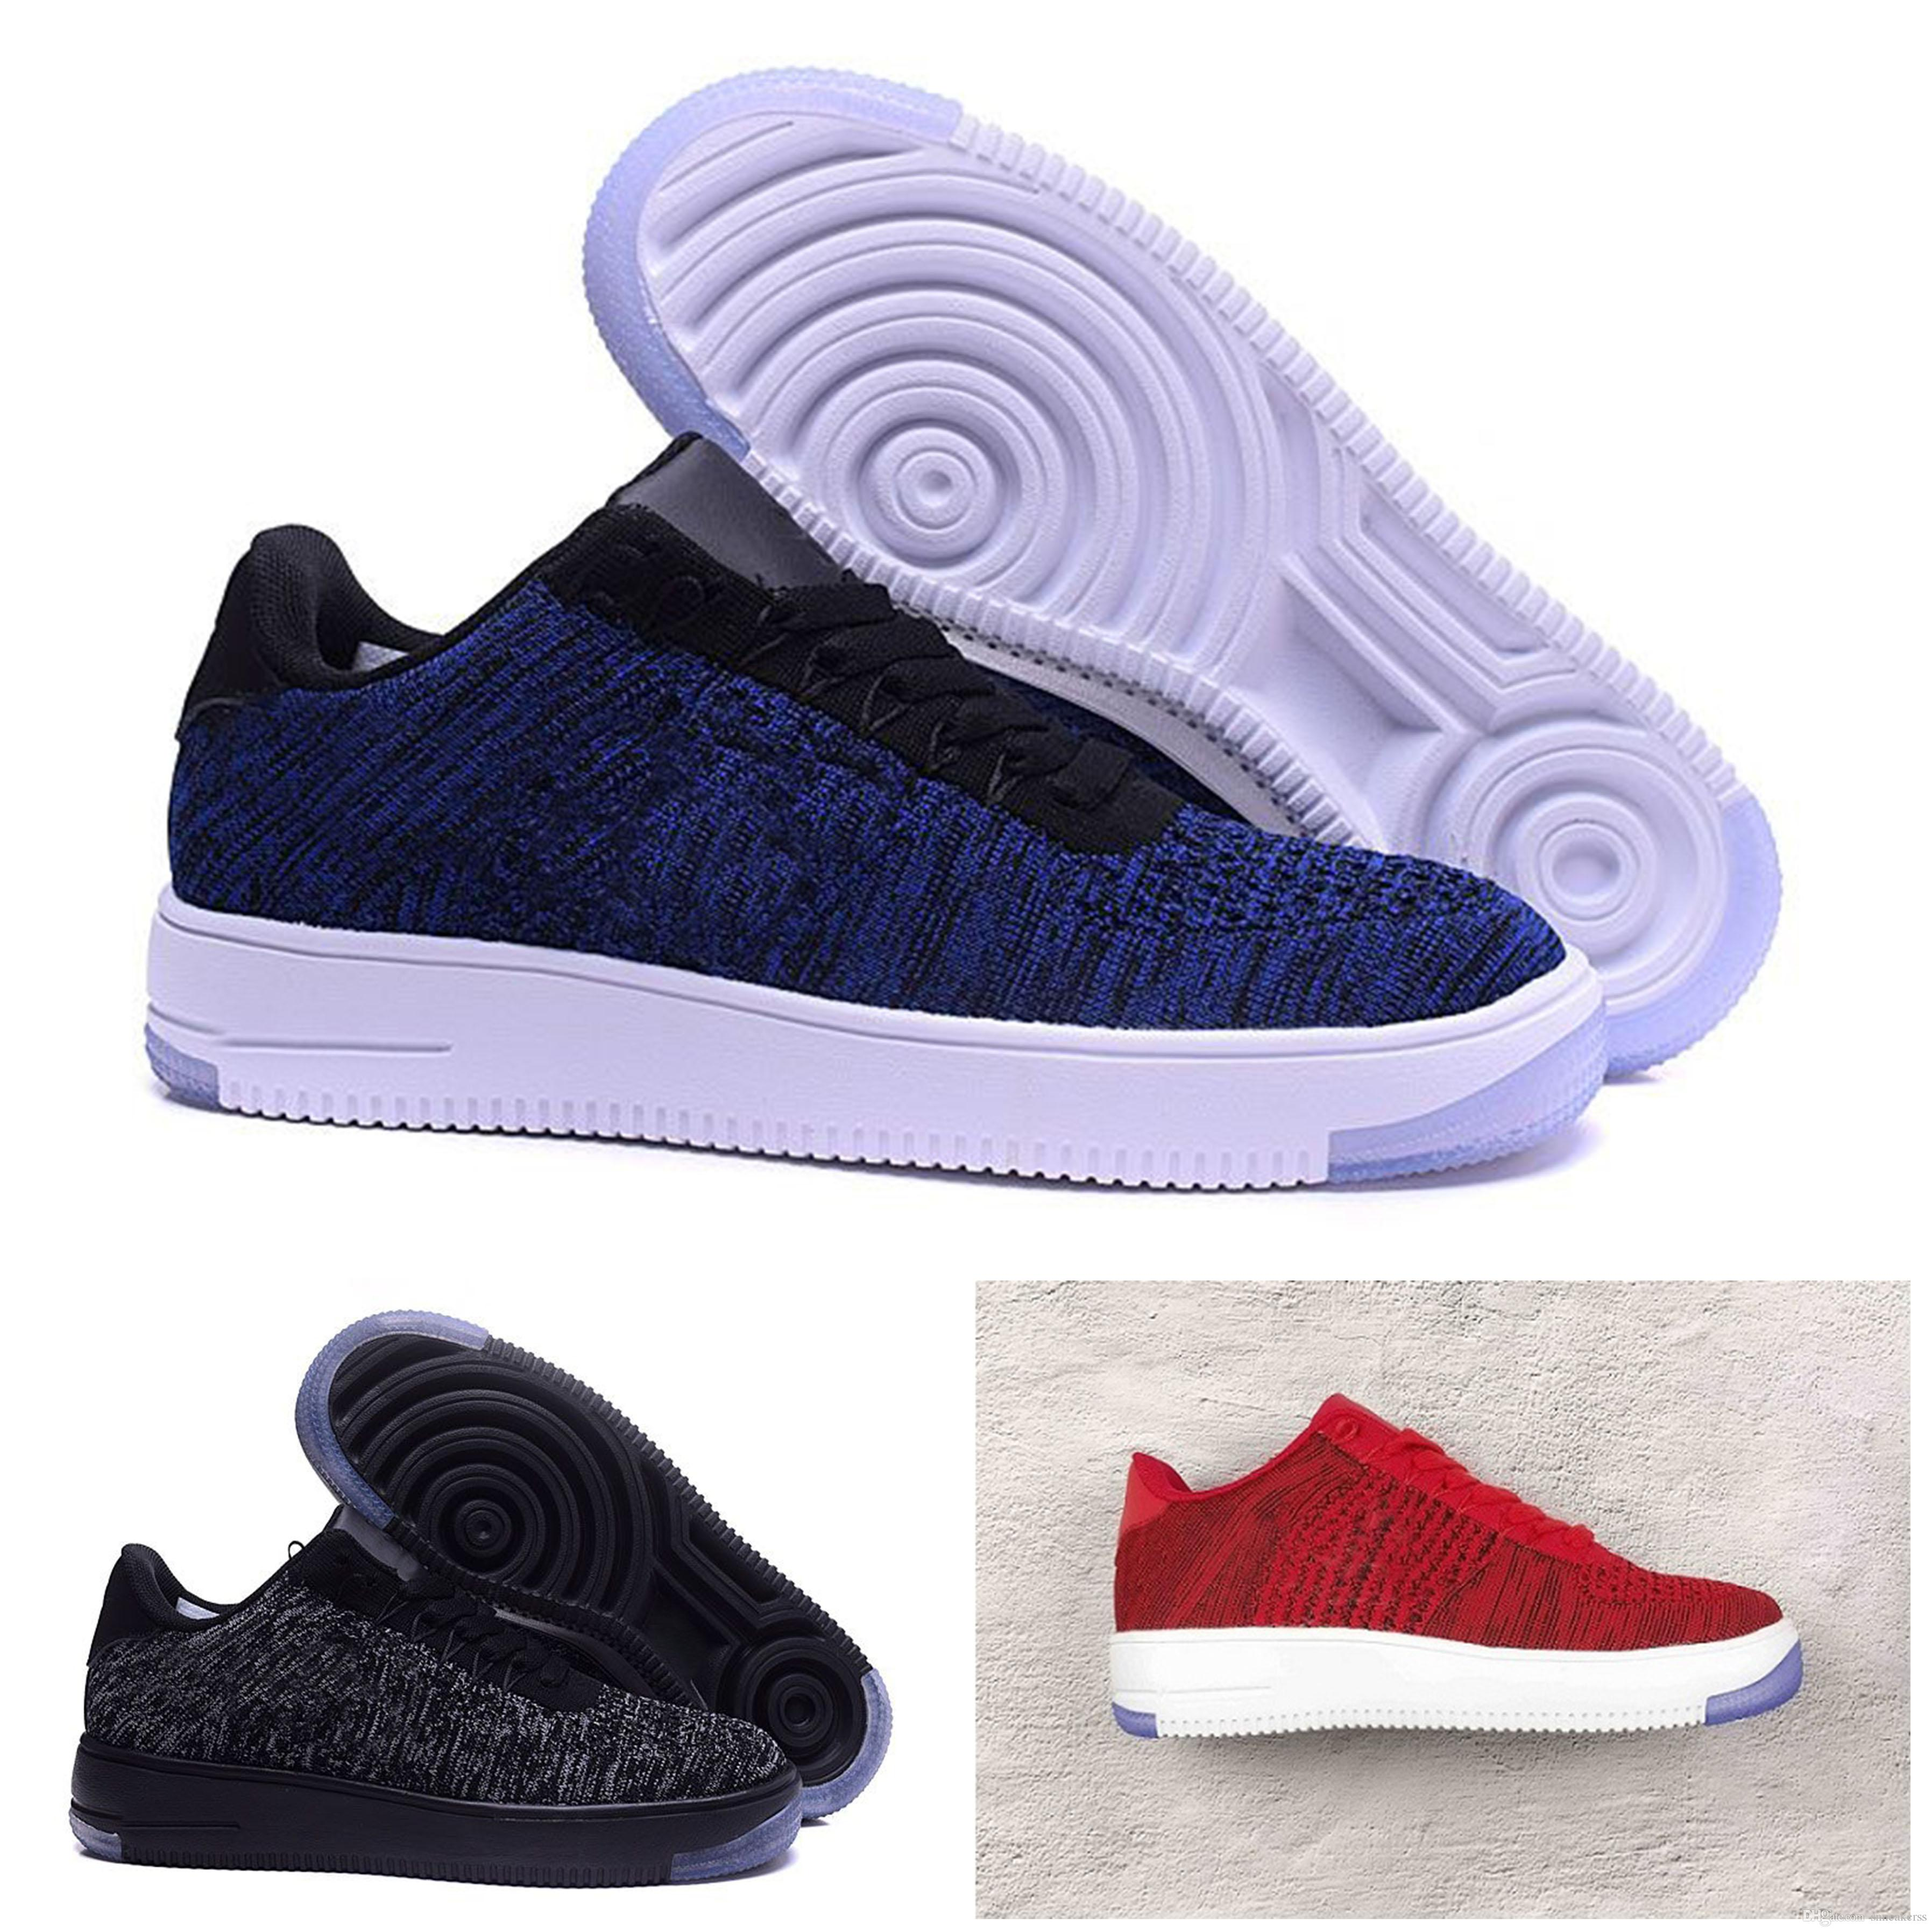 Acheter Nike Air Force 1 Flyknit Af1 Entier Chaud Af Sneakers Forces  Formateurs Low Cut Blanc Noir En Plein Air One 1 Dunk Running Chaussures  Hommes Femmes ... 33142d903e47